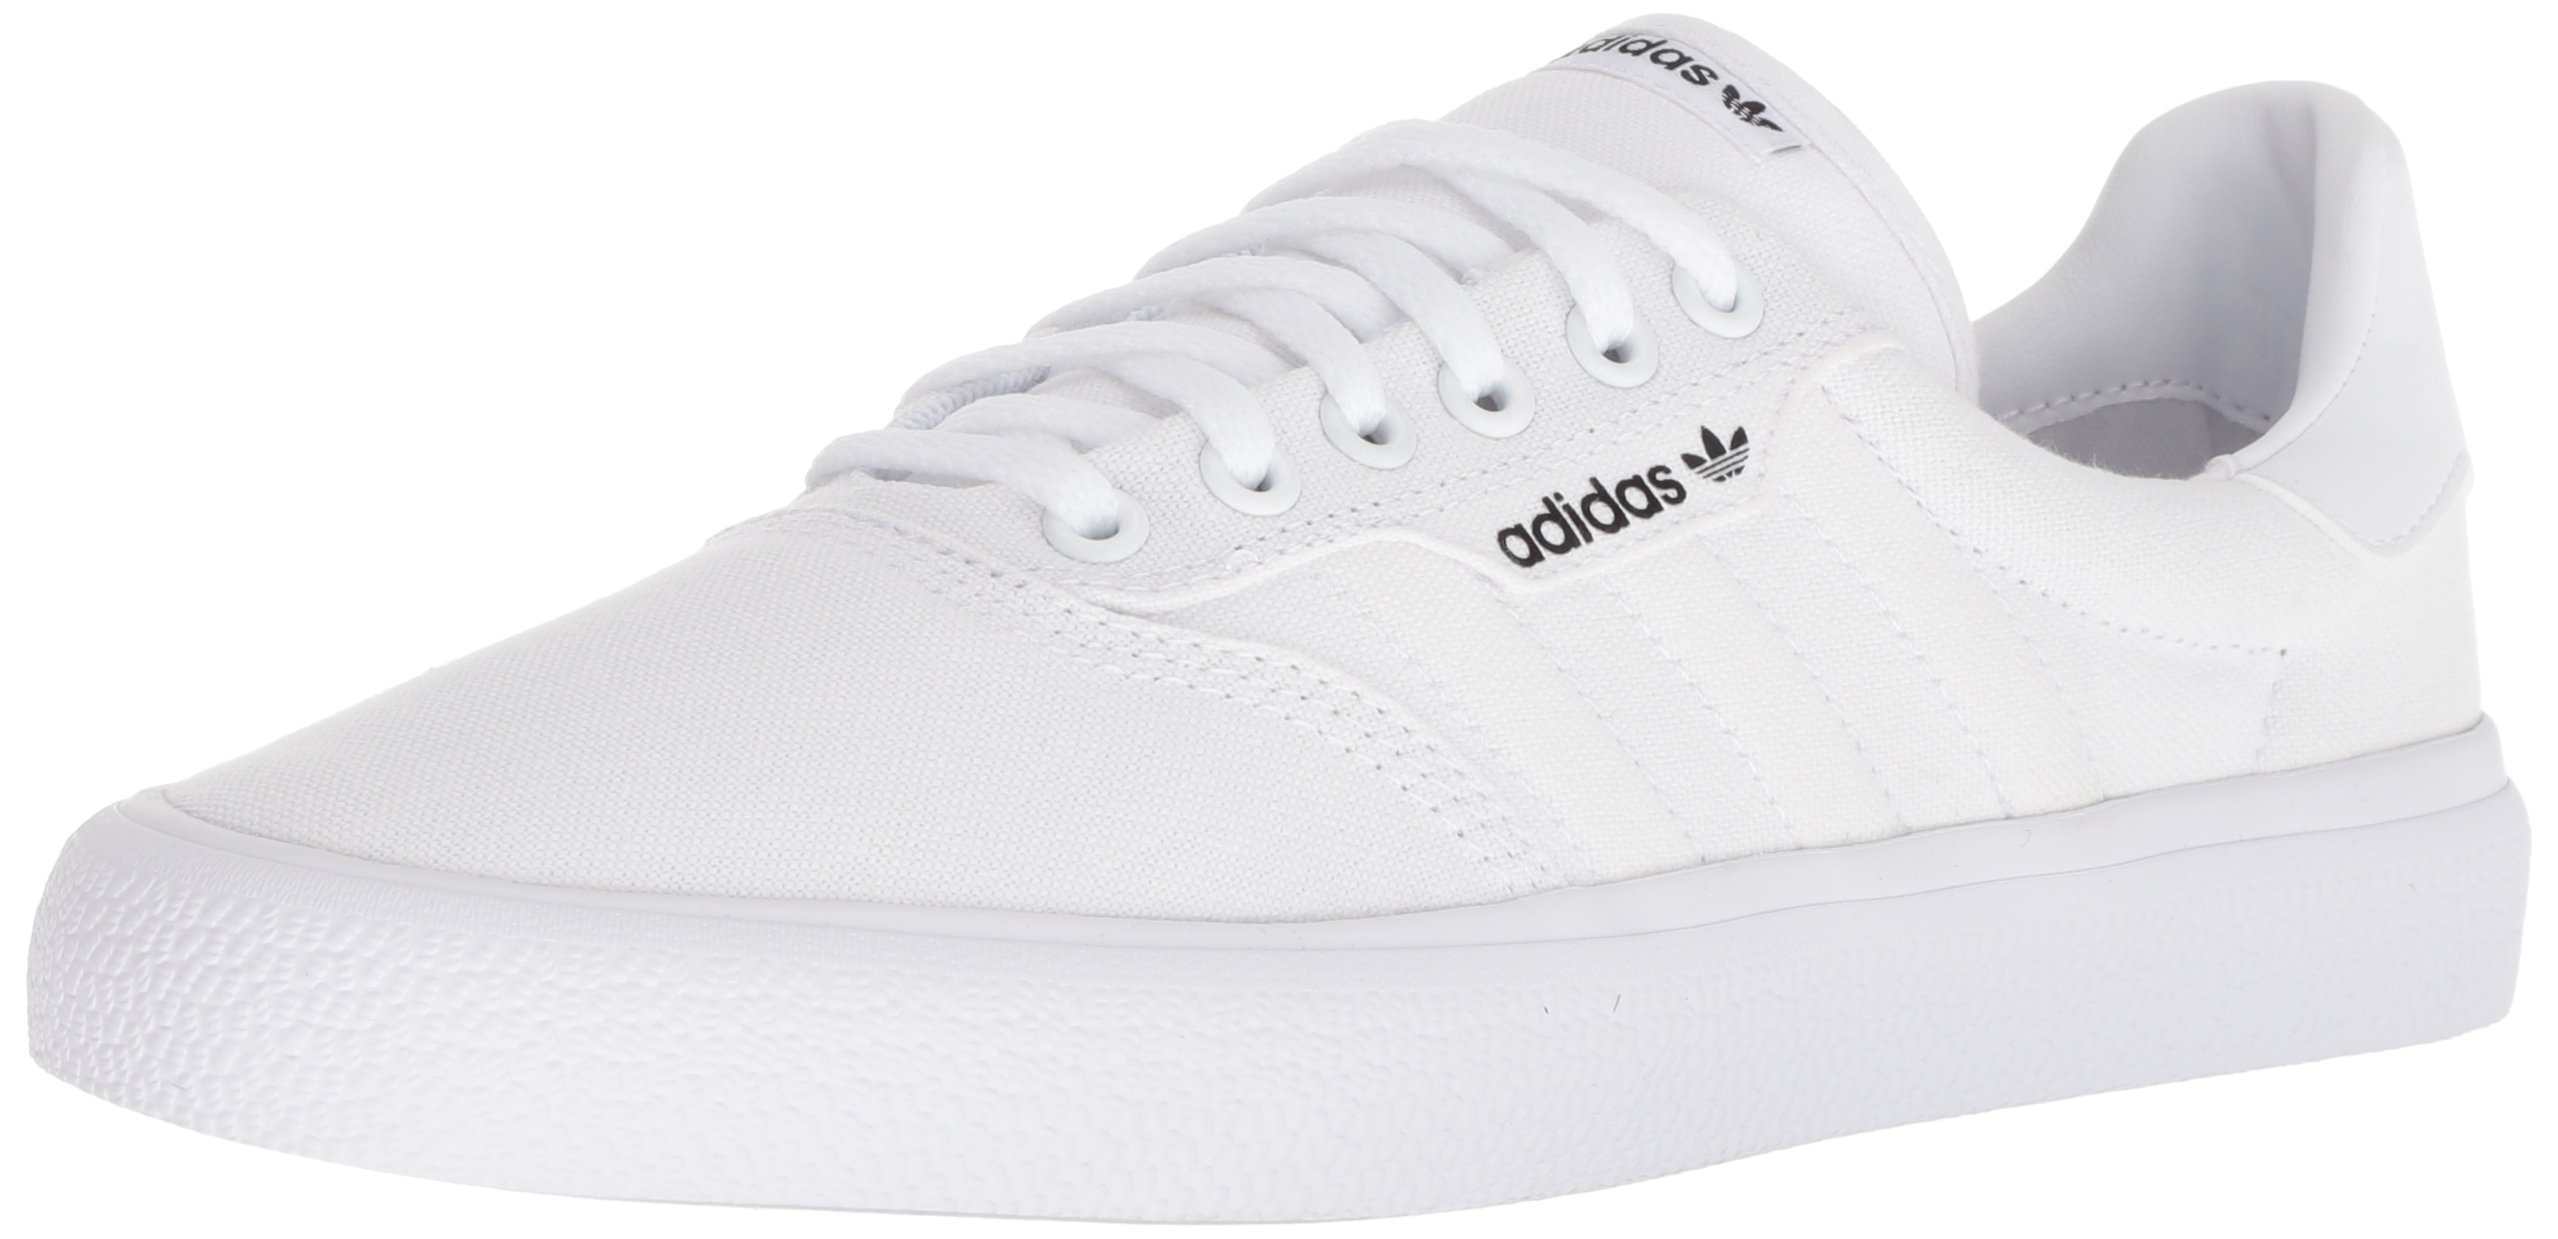 adidas Originals Unisex-adult 3 MC Skate Shoe White/Gold Metallic, 5.5 M US by adidas Originals (Image #1)